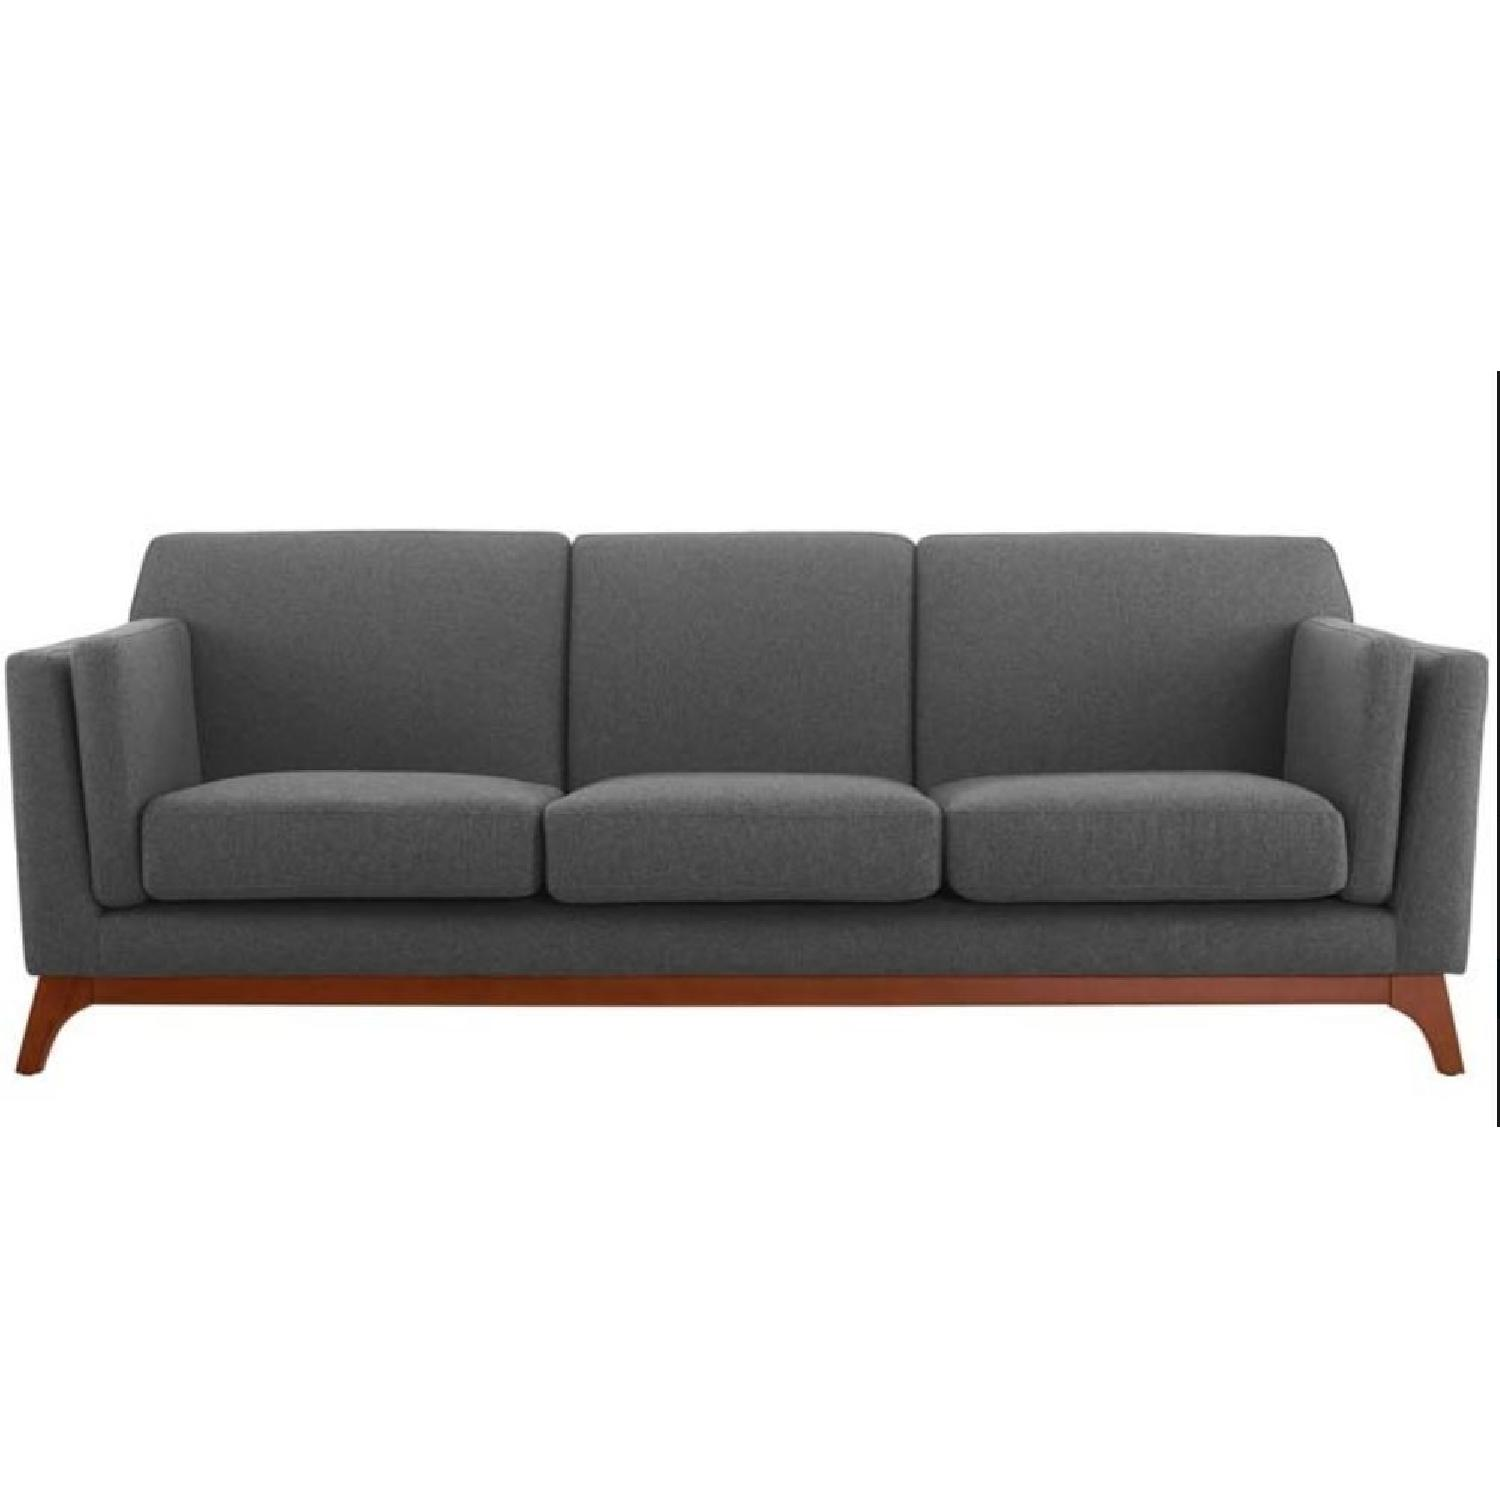 Grey Upholstered Fabric Sofa-0